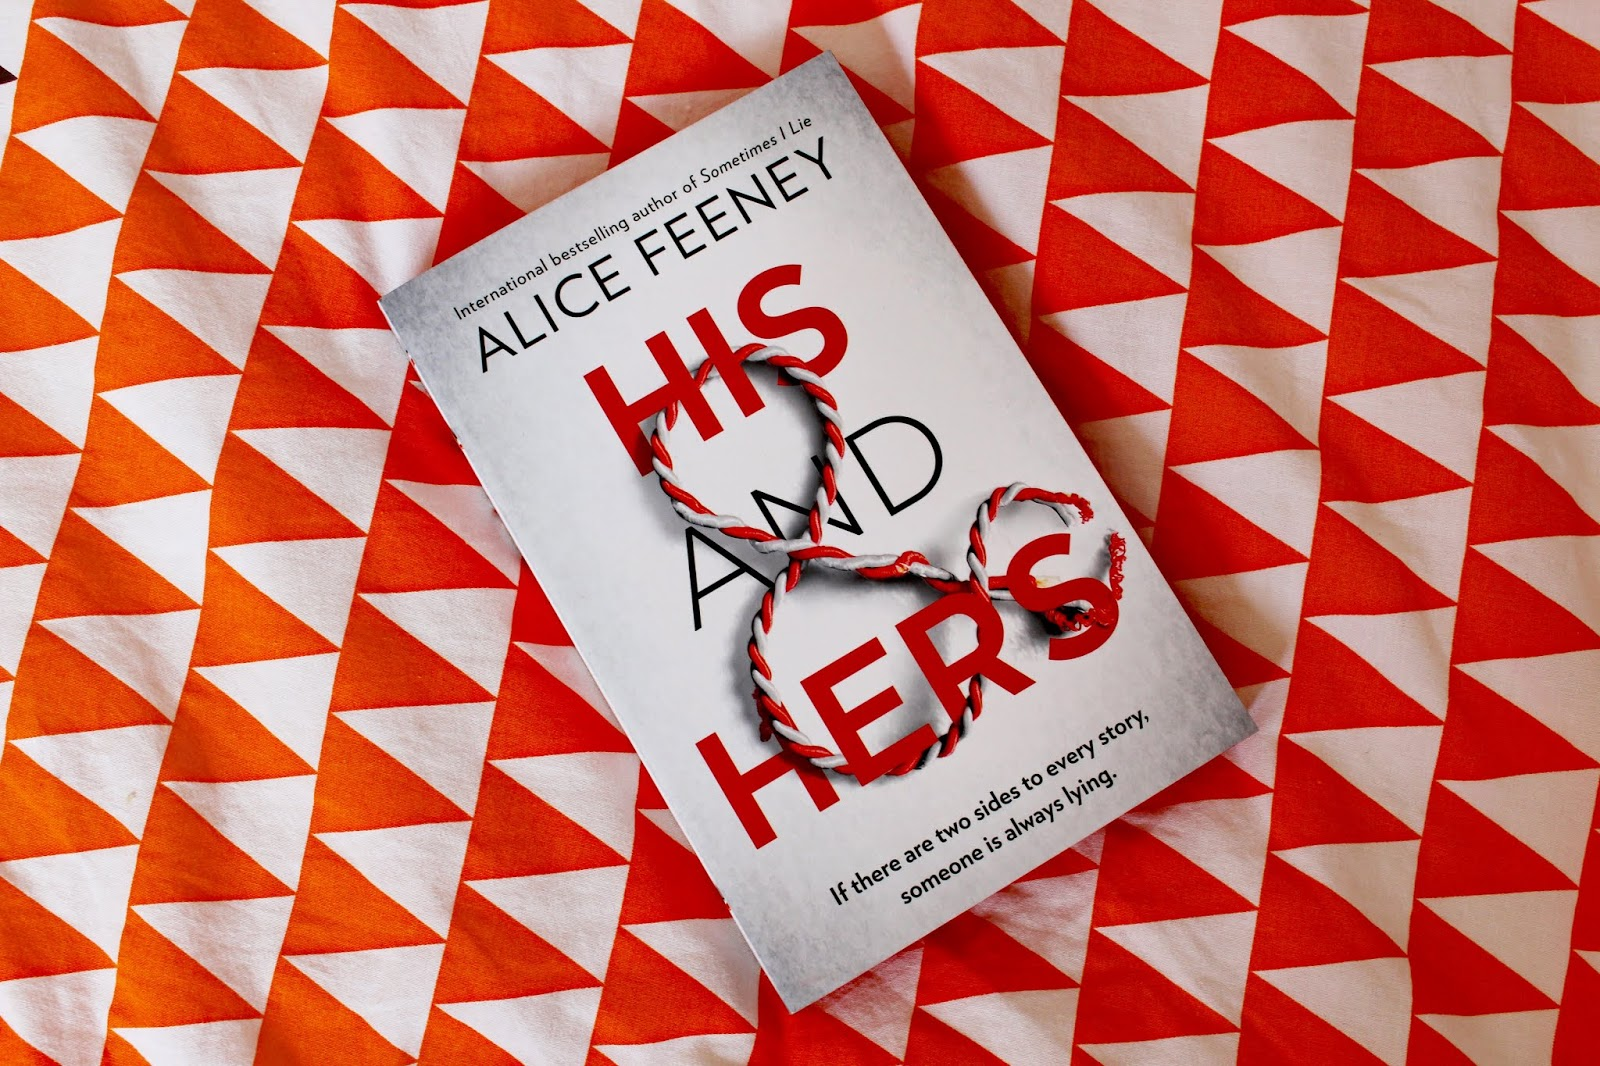 His And Hers By Alice Feeney | Book Review